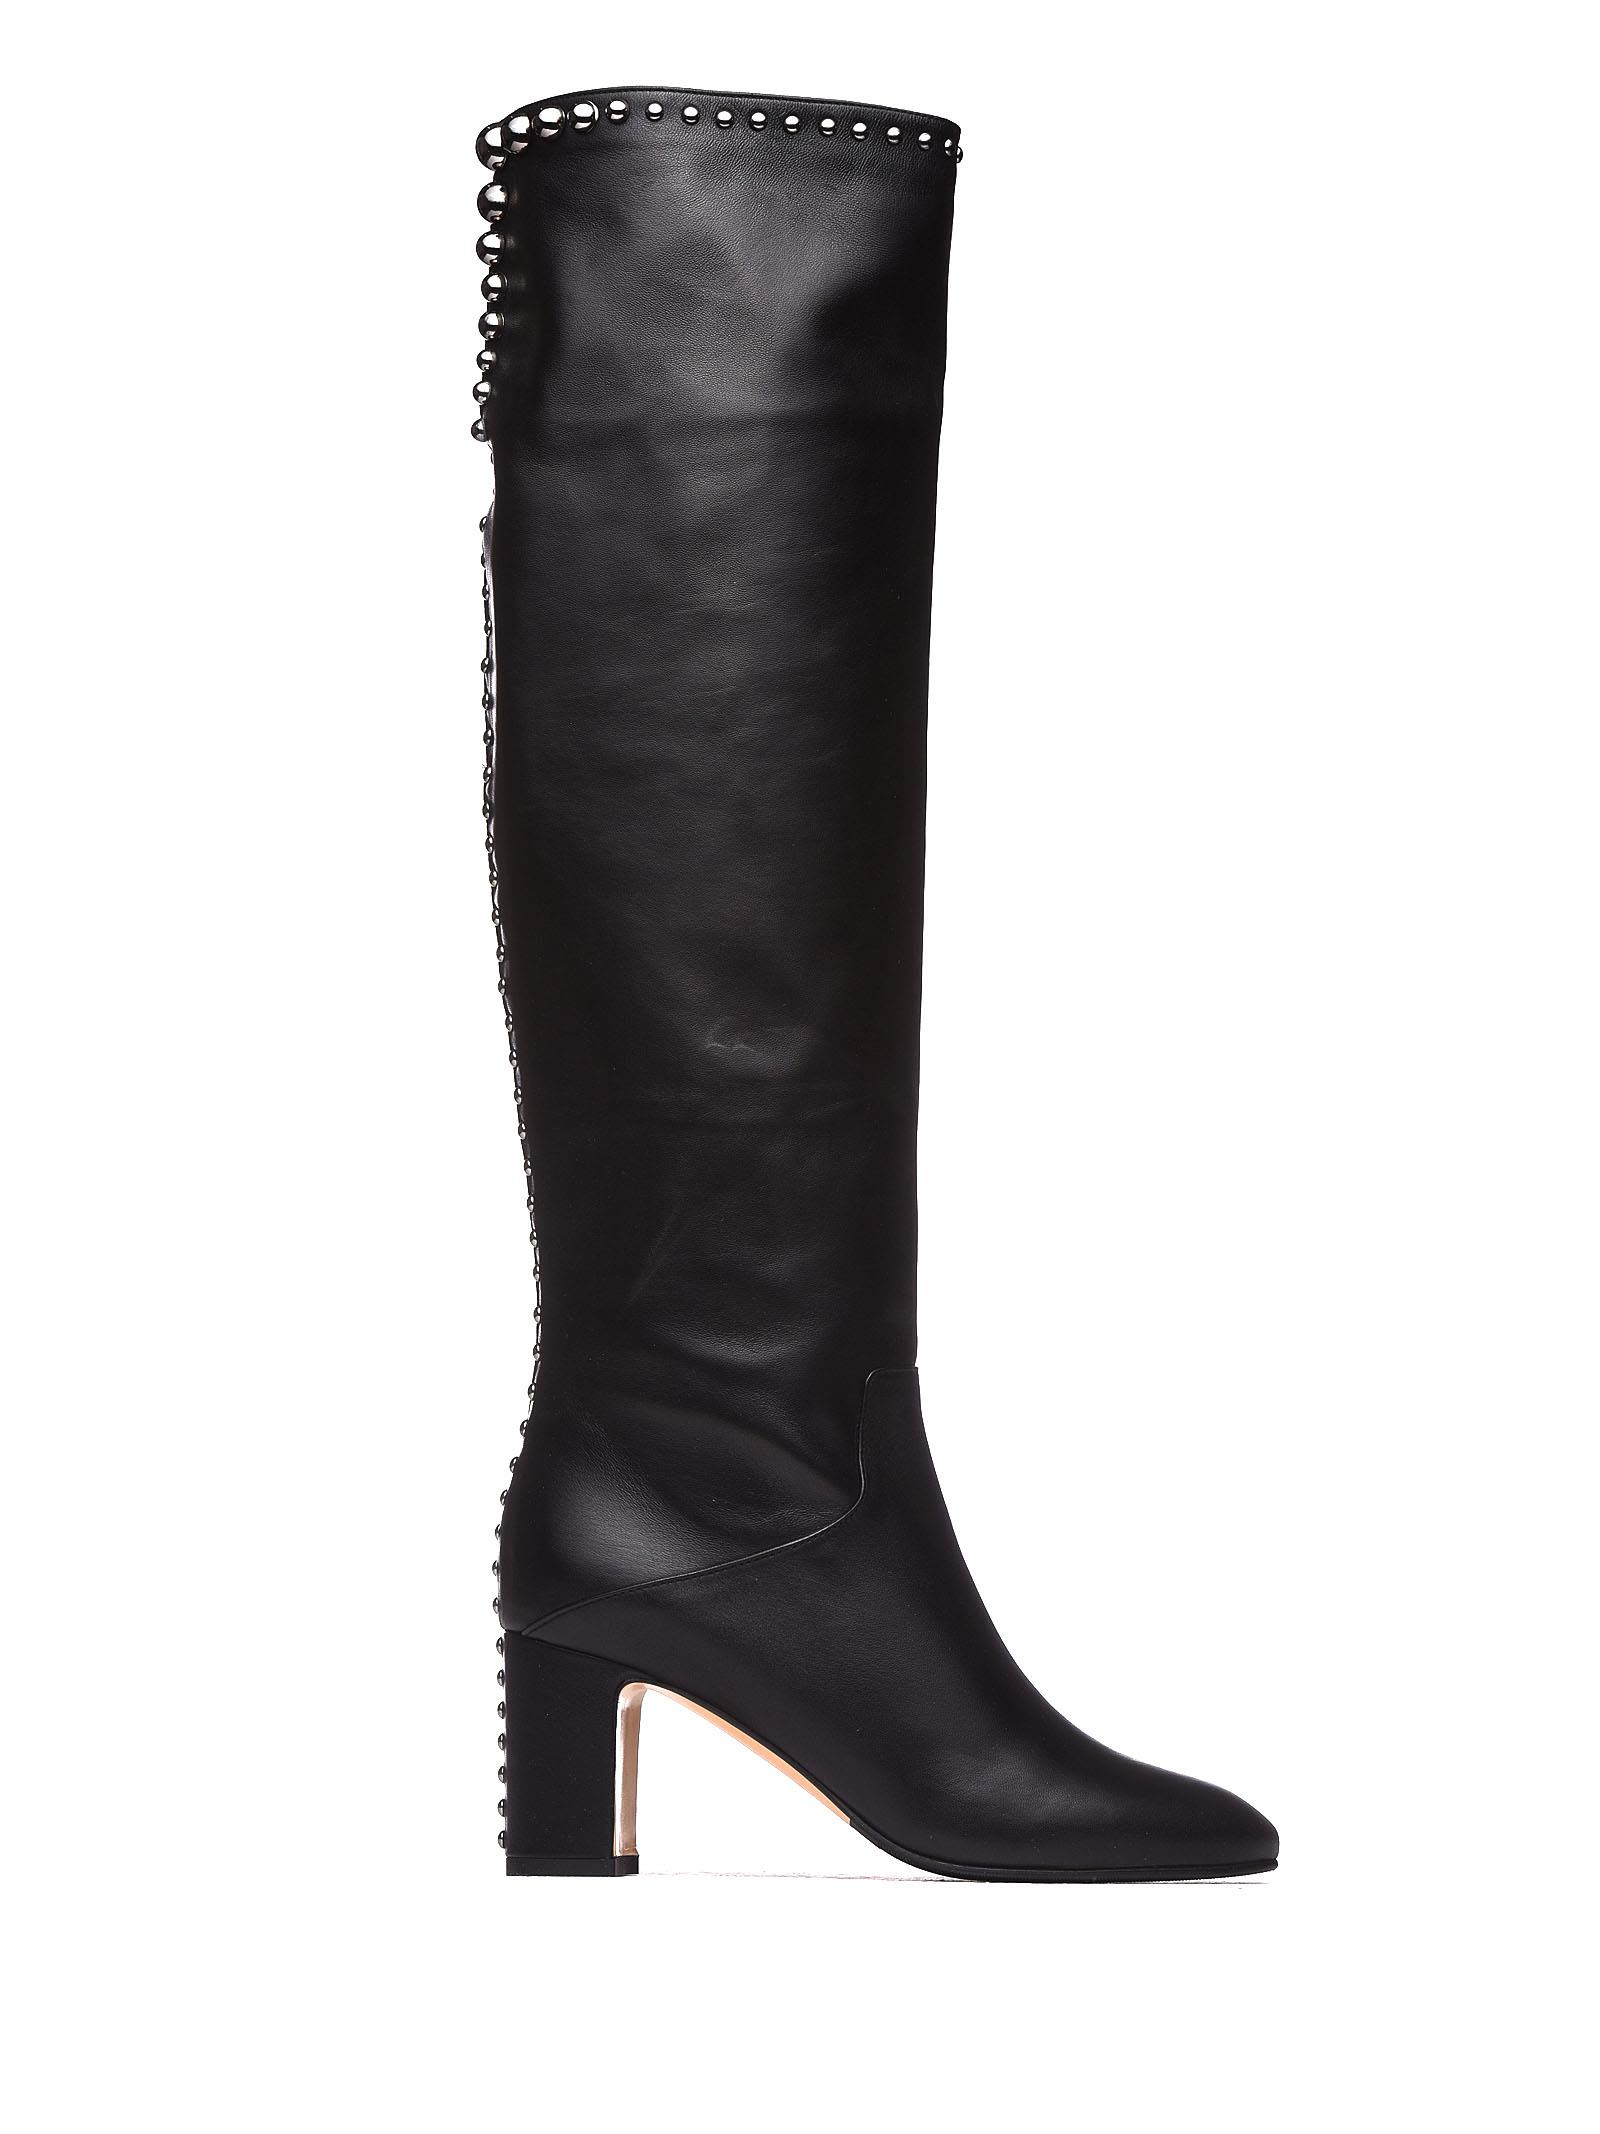 NINALILOU Boots With Studs in Nero